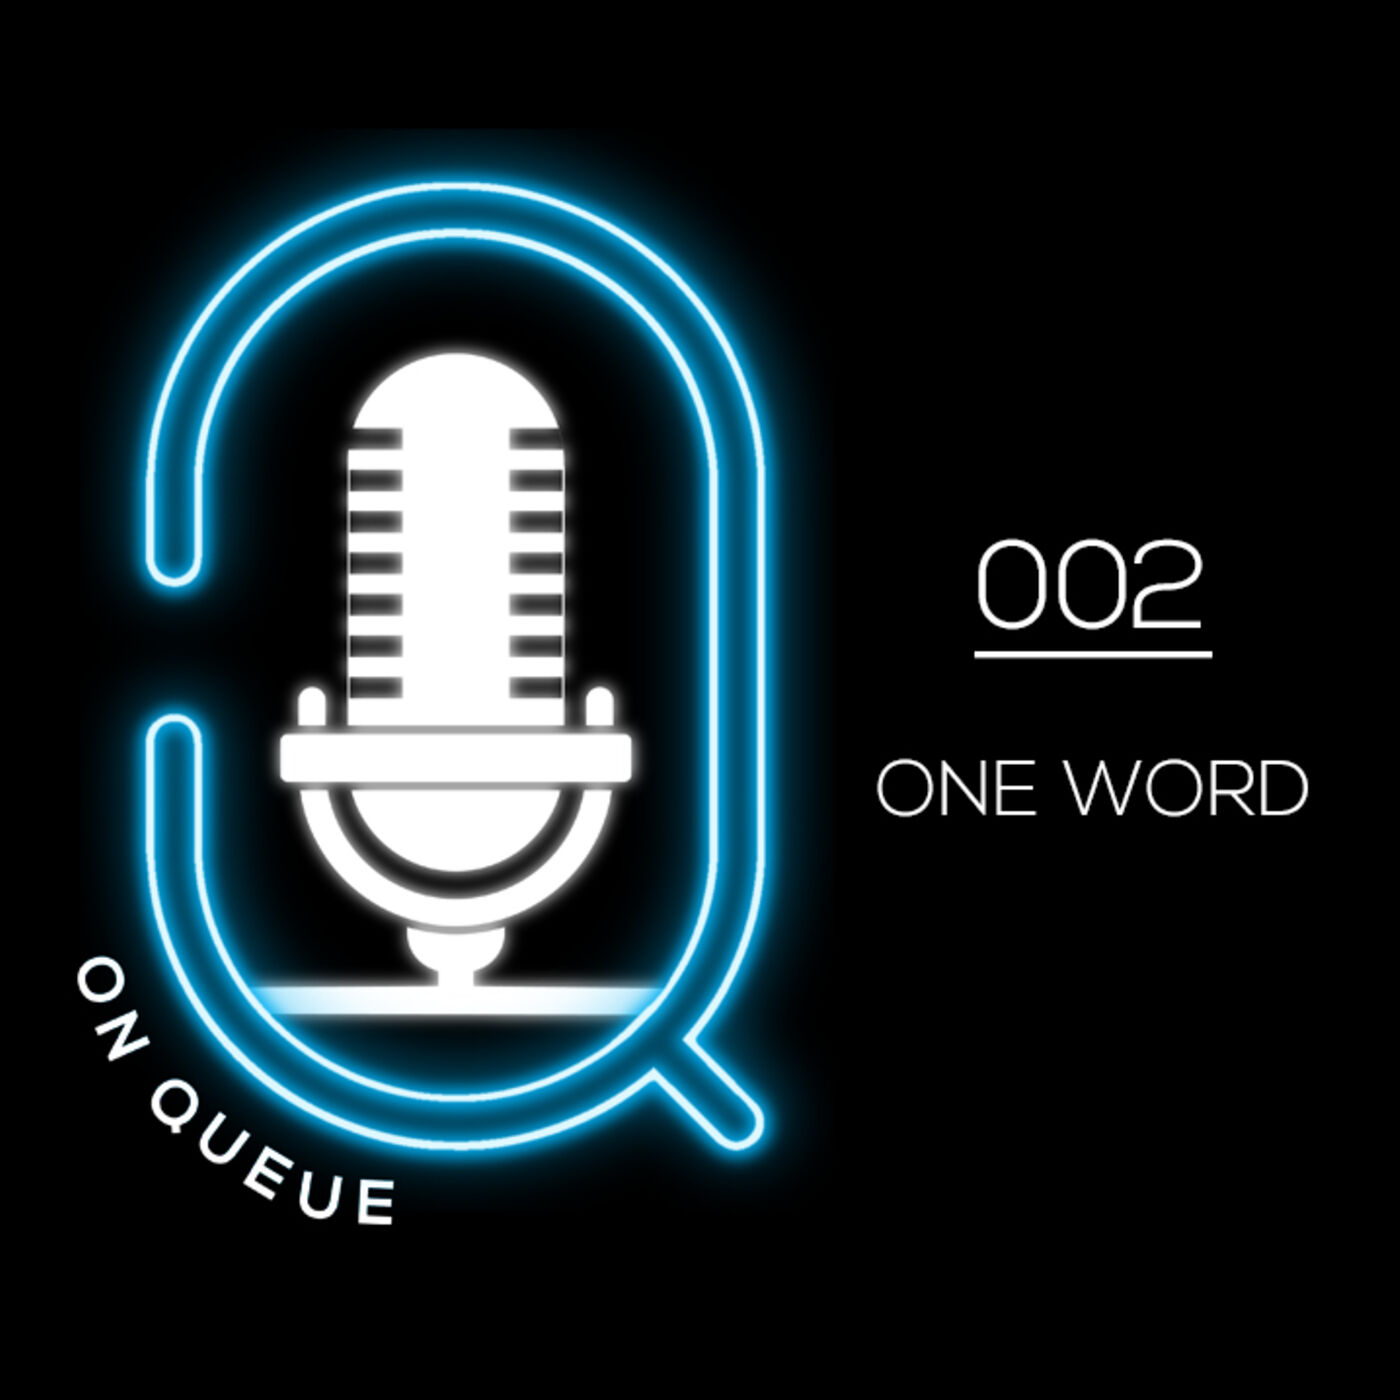 Q on queue 002: One Word